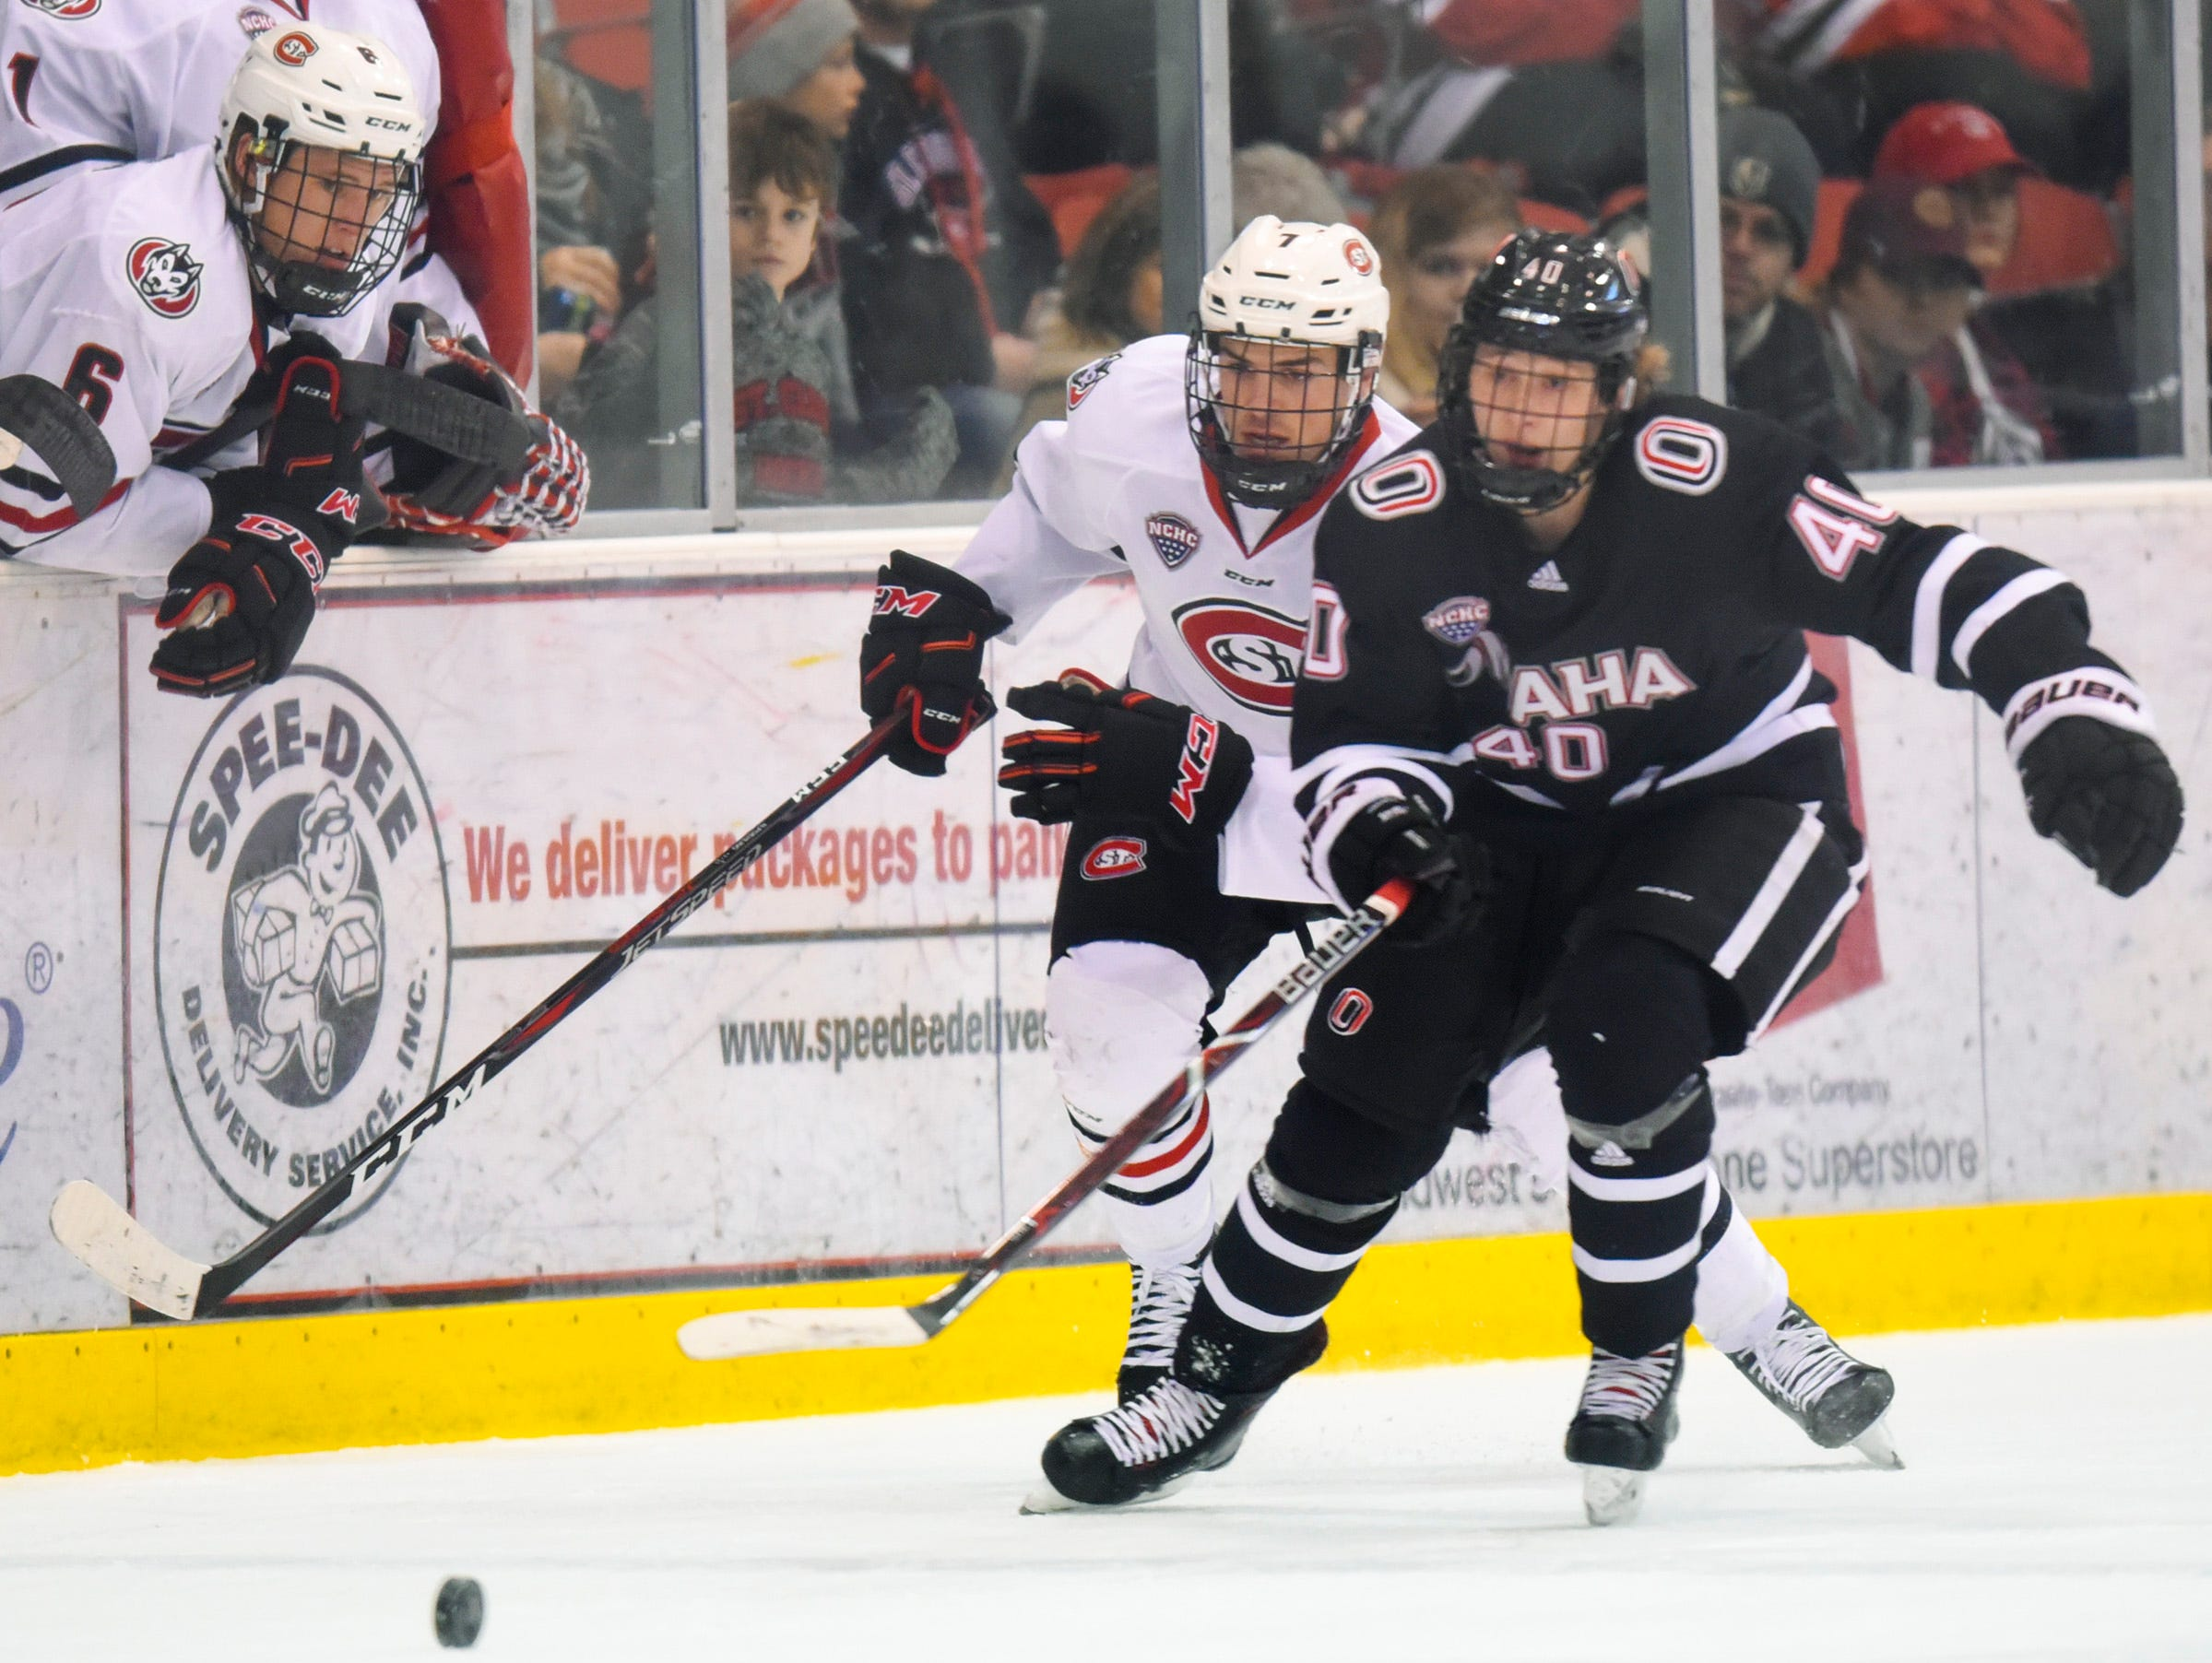 St. Cloud State's Nick Poehling and Nebraska-Omaha's Tyler Weiss chase a loose puck during the first period Saturday, Dec. 8, at the Herb Brooks National Hockey Center.